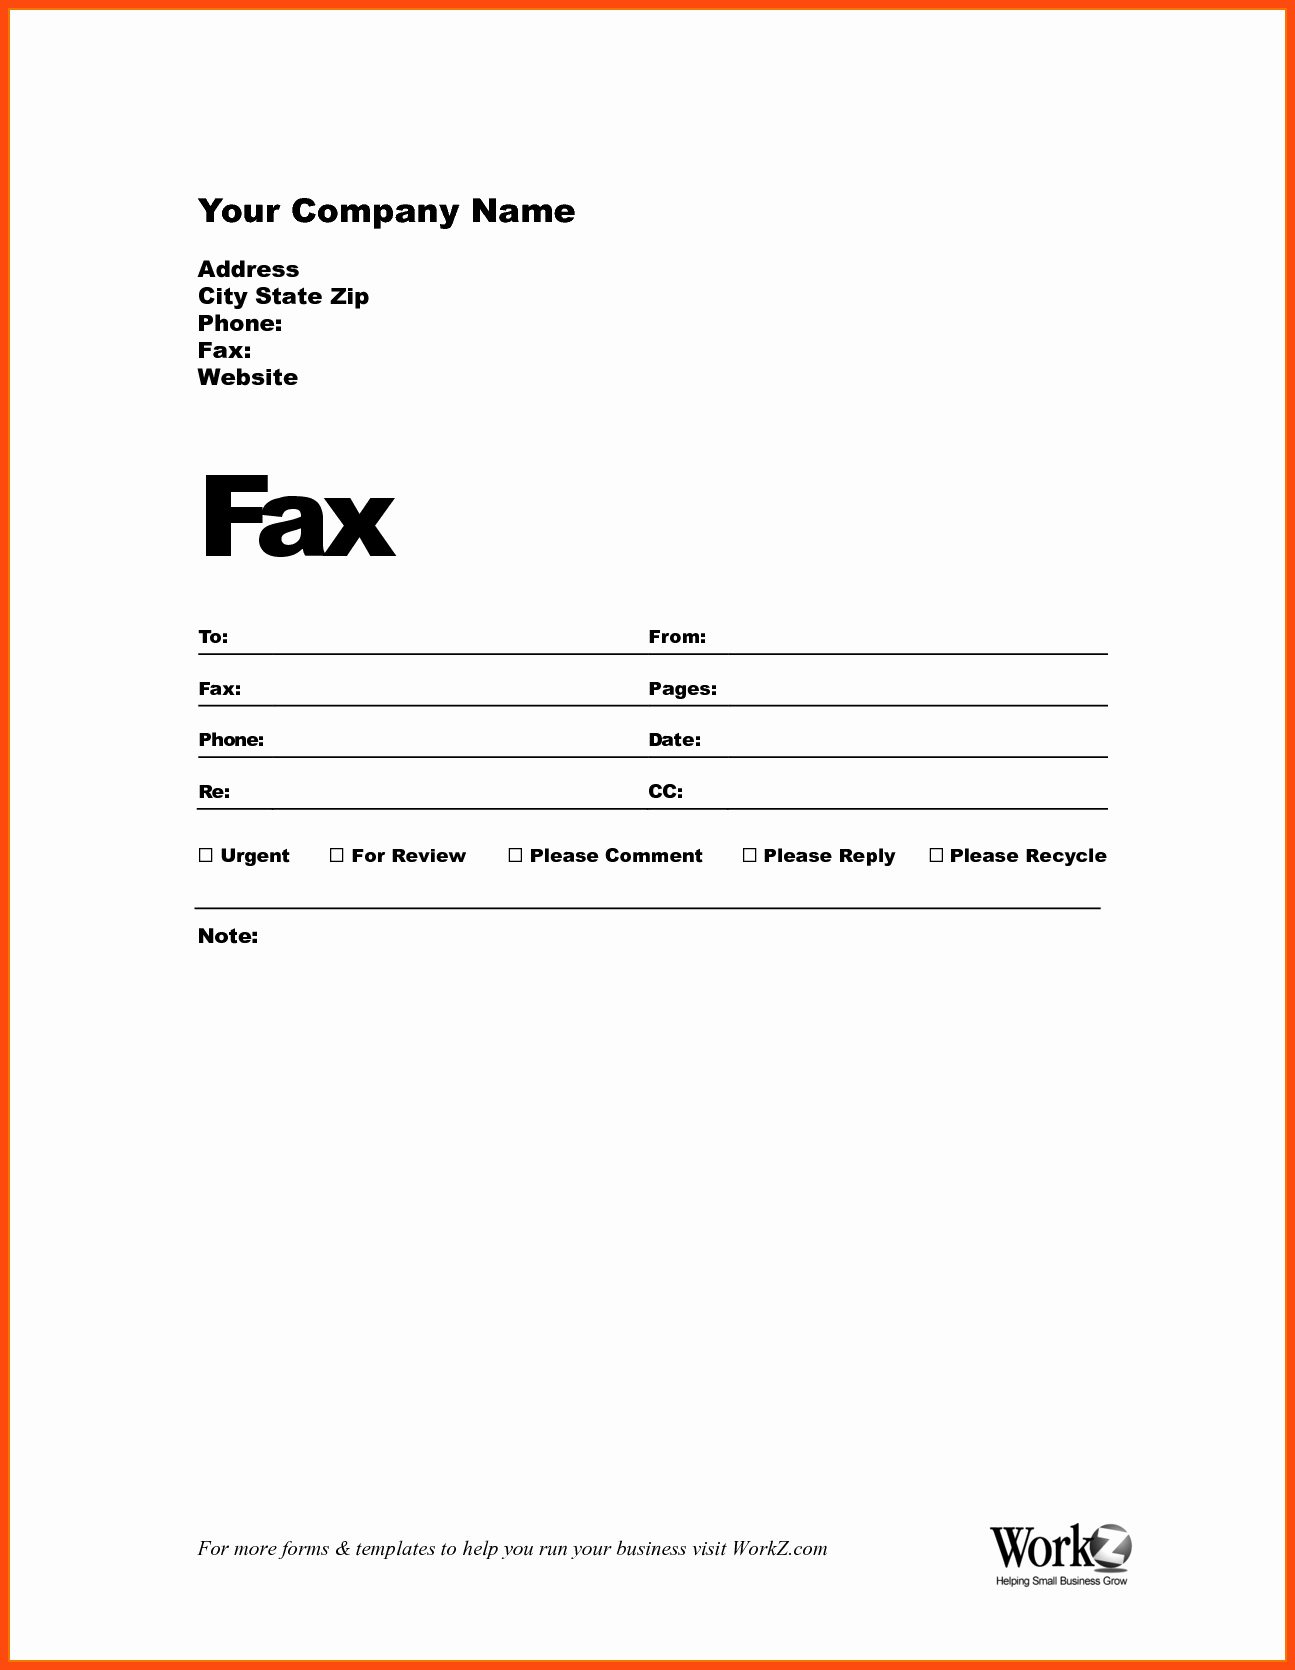 Sample Fax Cover Sheets Elegant How to Fill Out A Fax Cover Sheet